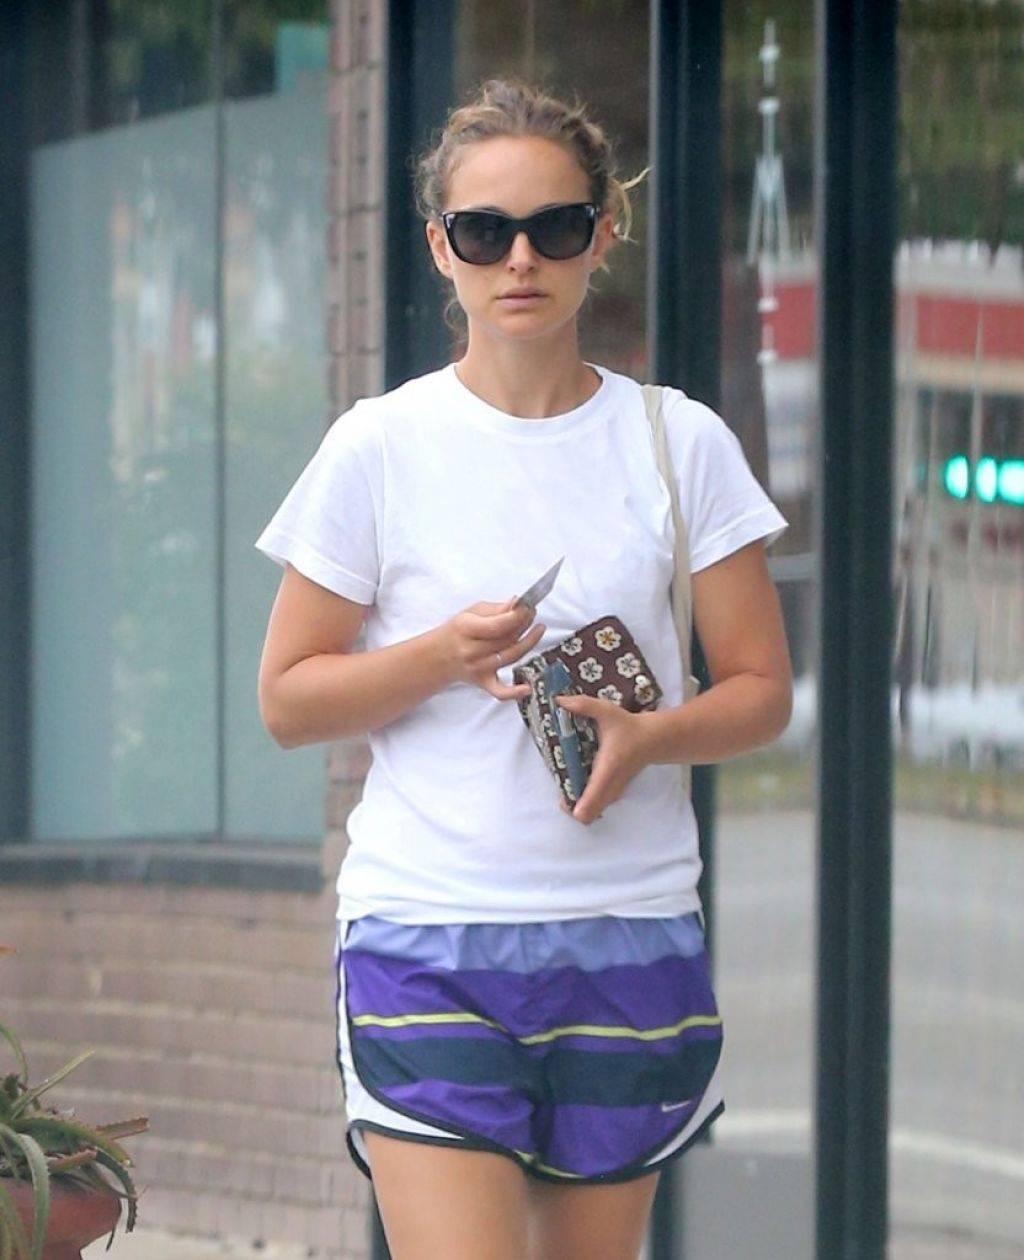 Natalie Portman Shows off Her Legs in Shorts - Goes to Pilates Class in Los Angeles - July 2014